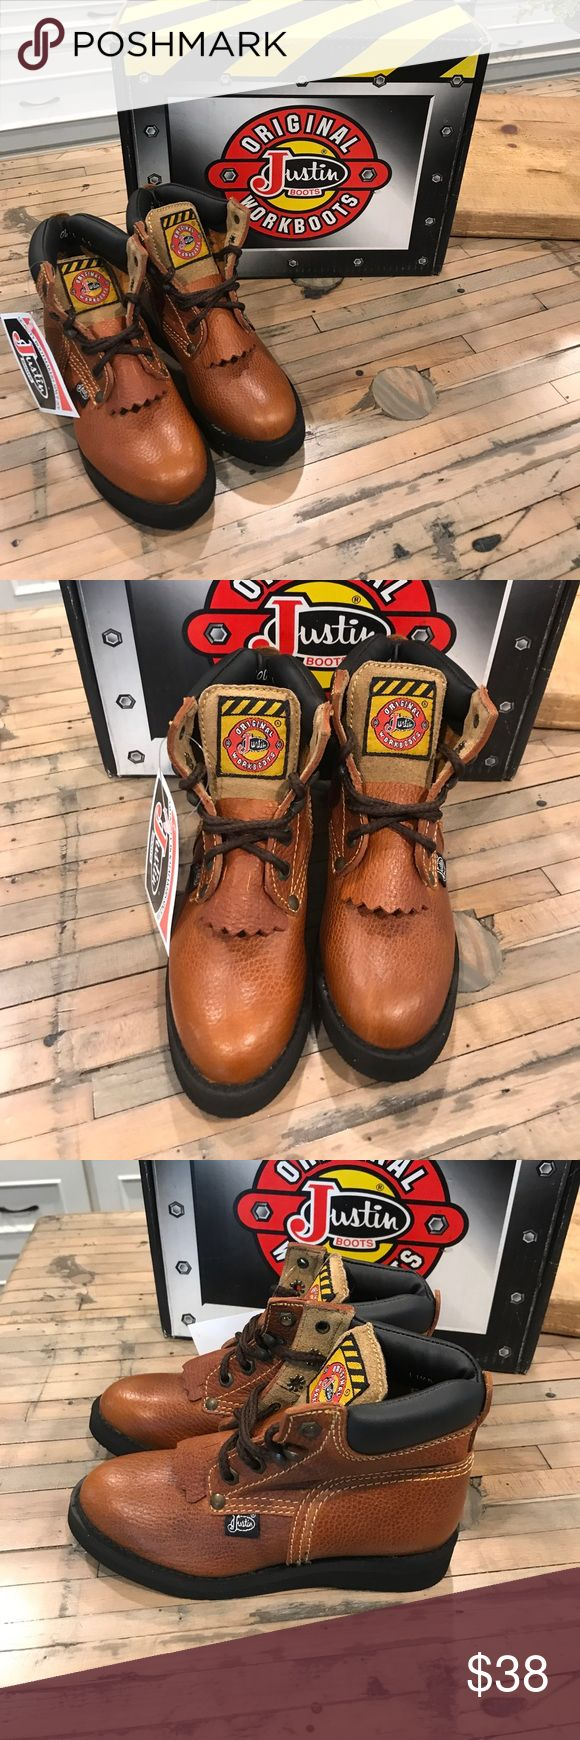 Justin Work Boots size kids 11 1/2 D Justin Work boots size 11 1/2 D kids. Never worn. Box included. Justin Boots Shoes Boots